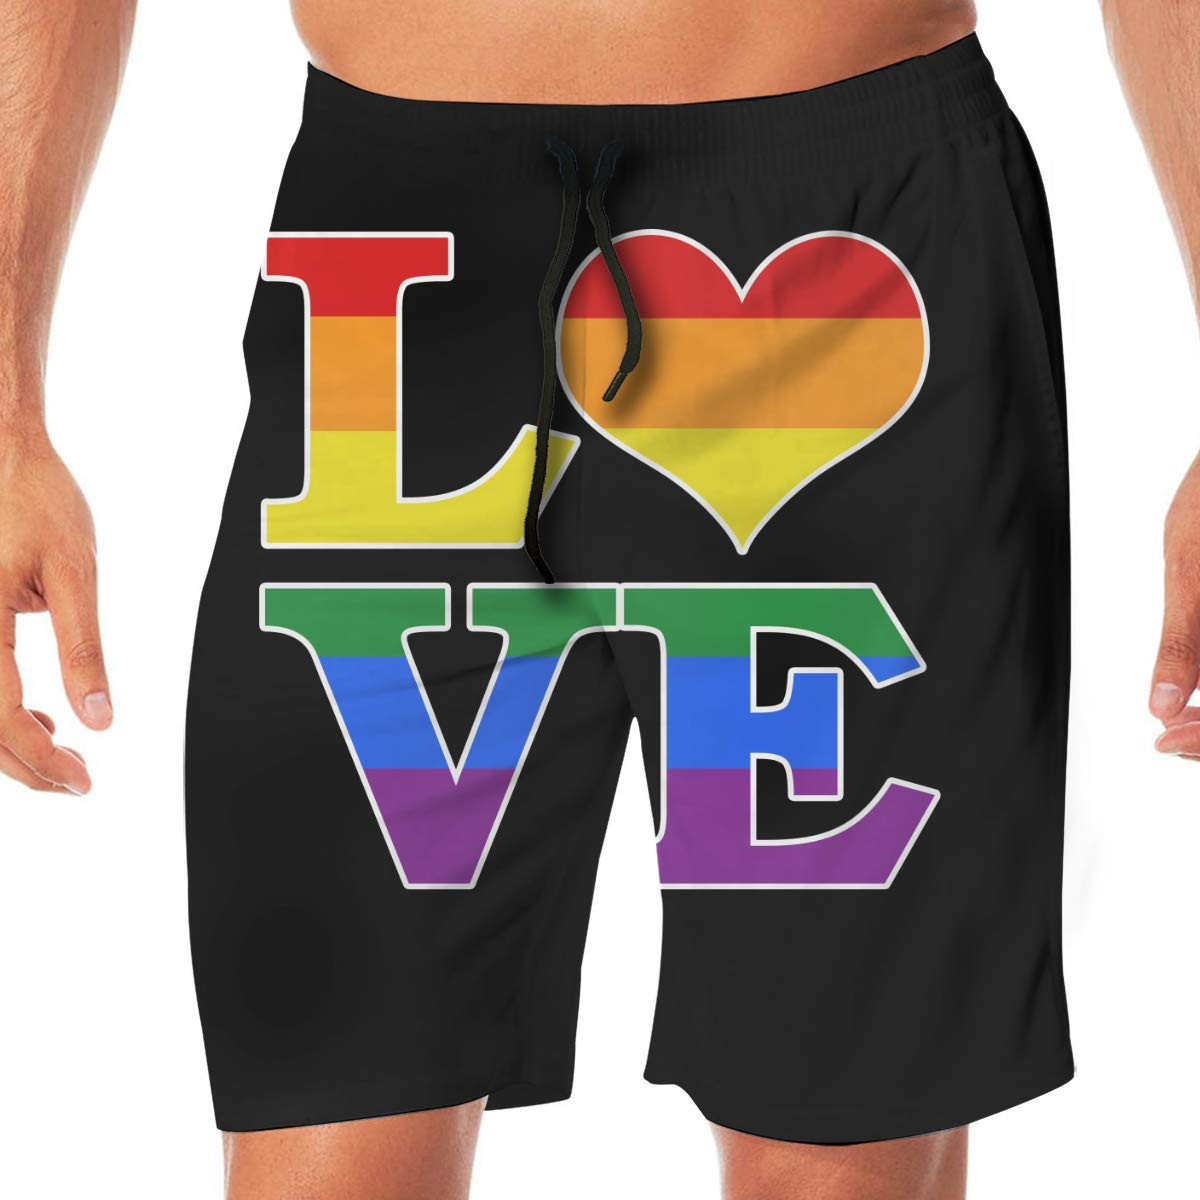 Mens Bathing Suit Gay Love Rainbow Heart Gay/&Lesbian Pride Lightweight Beach Boardshort for Men